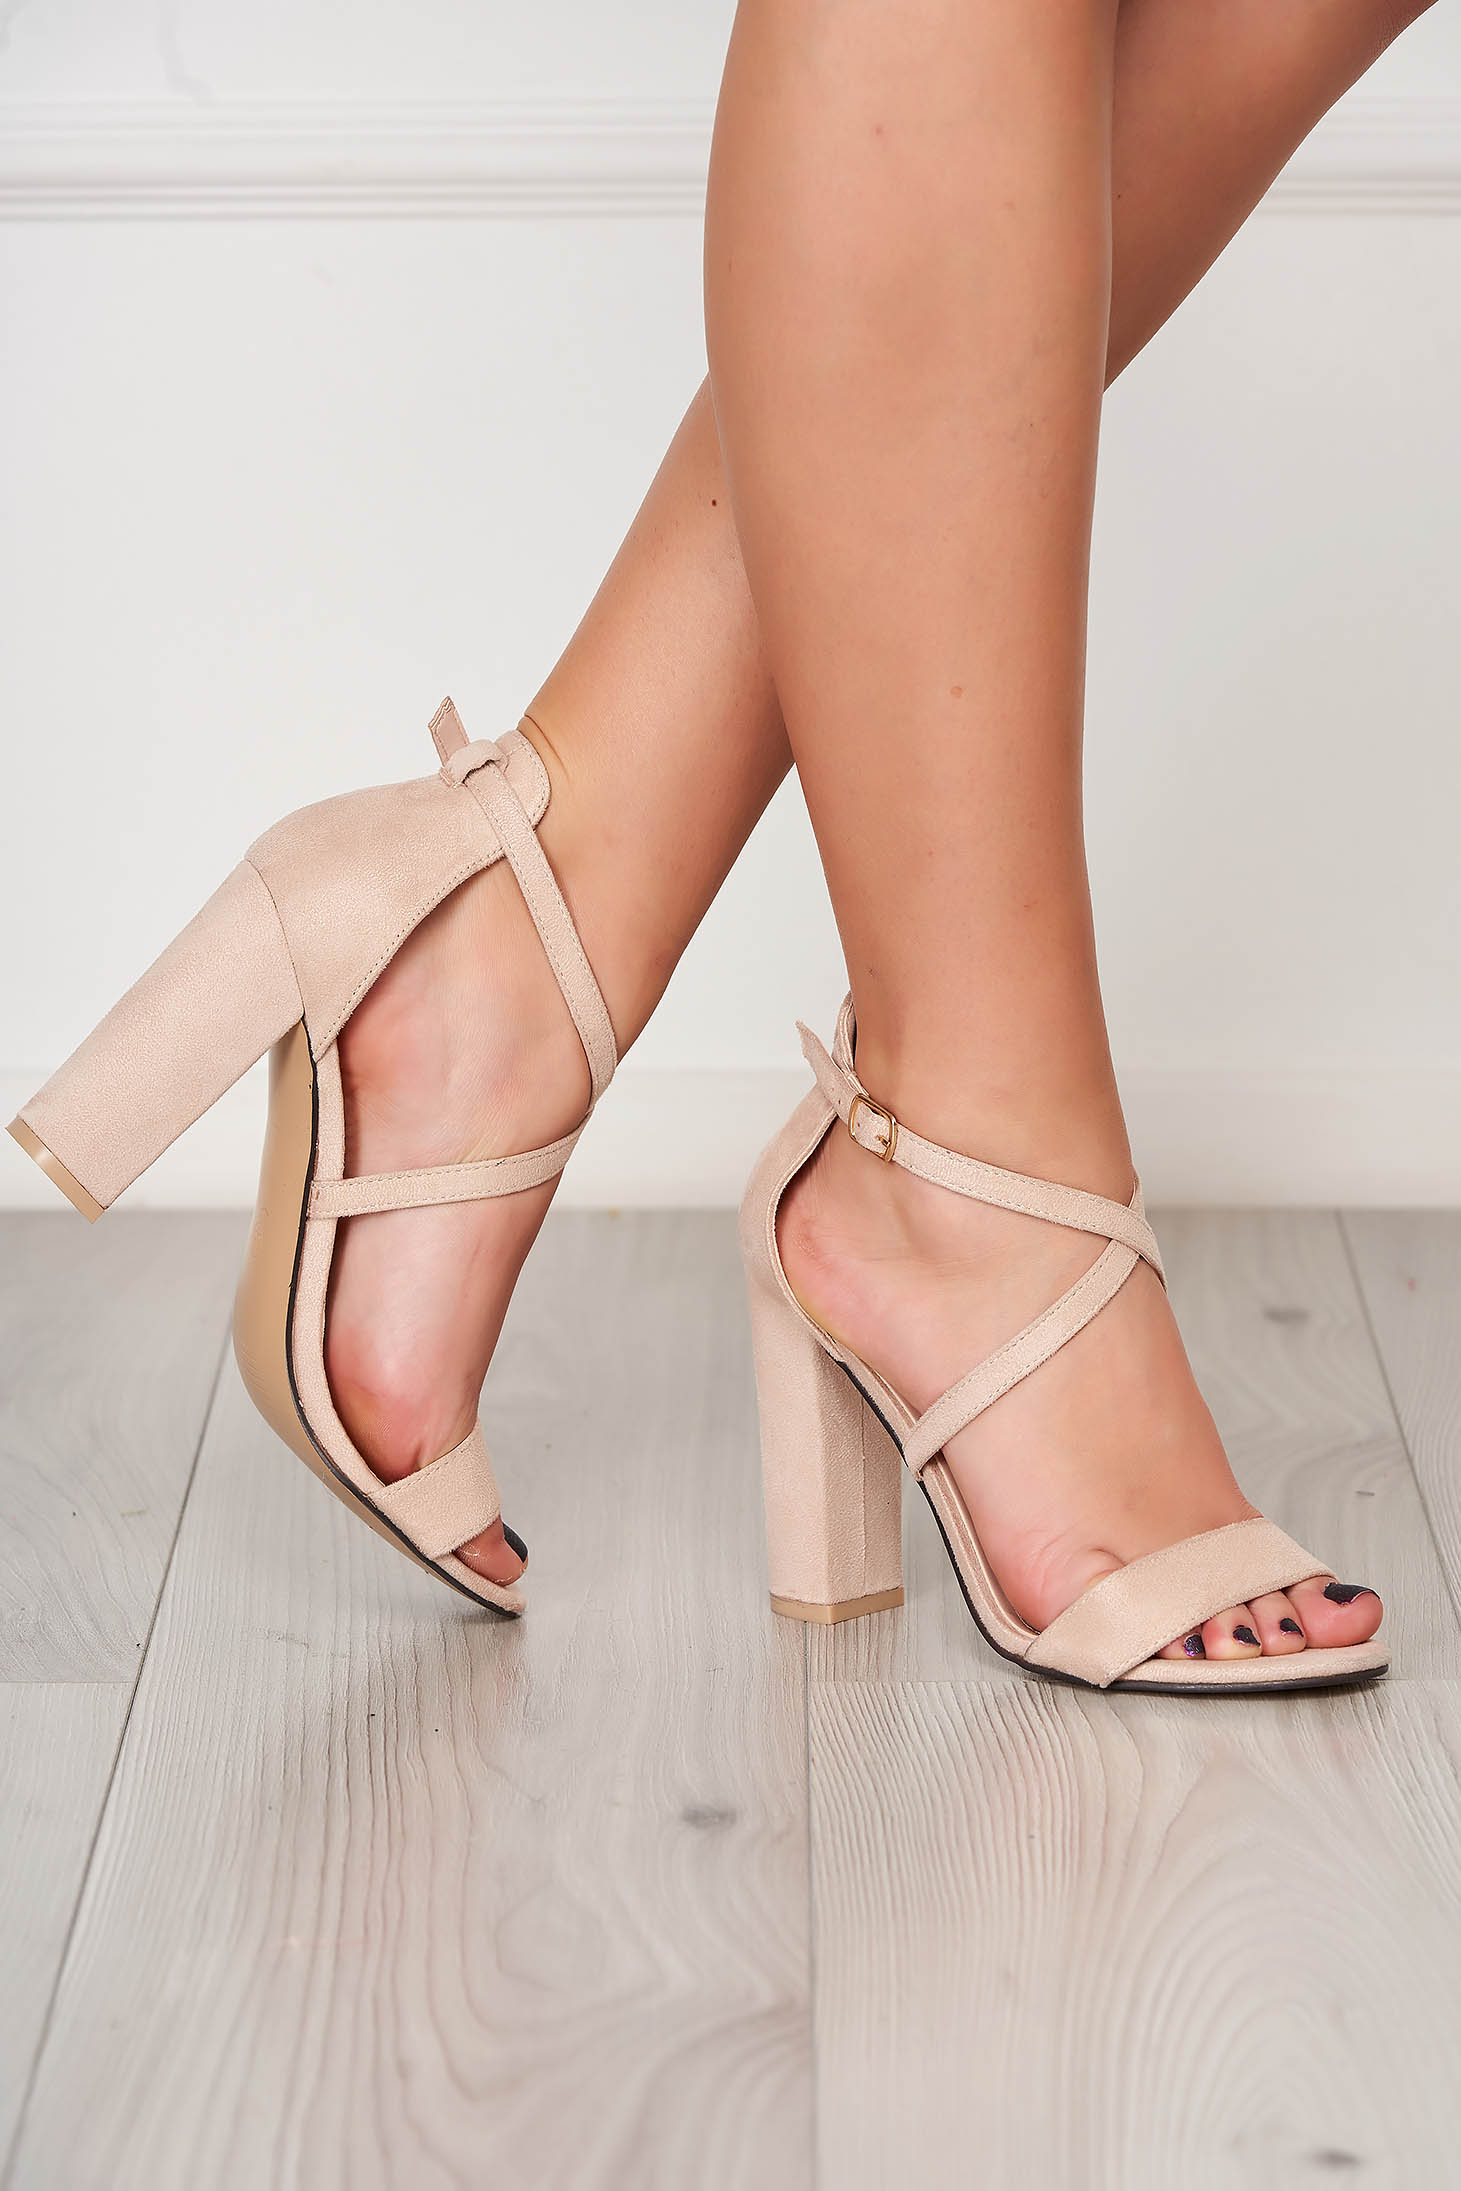 Cream sandals with thin straps from ecological leather